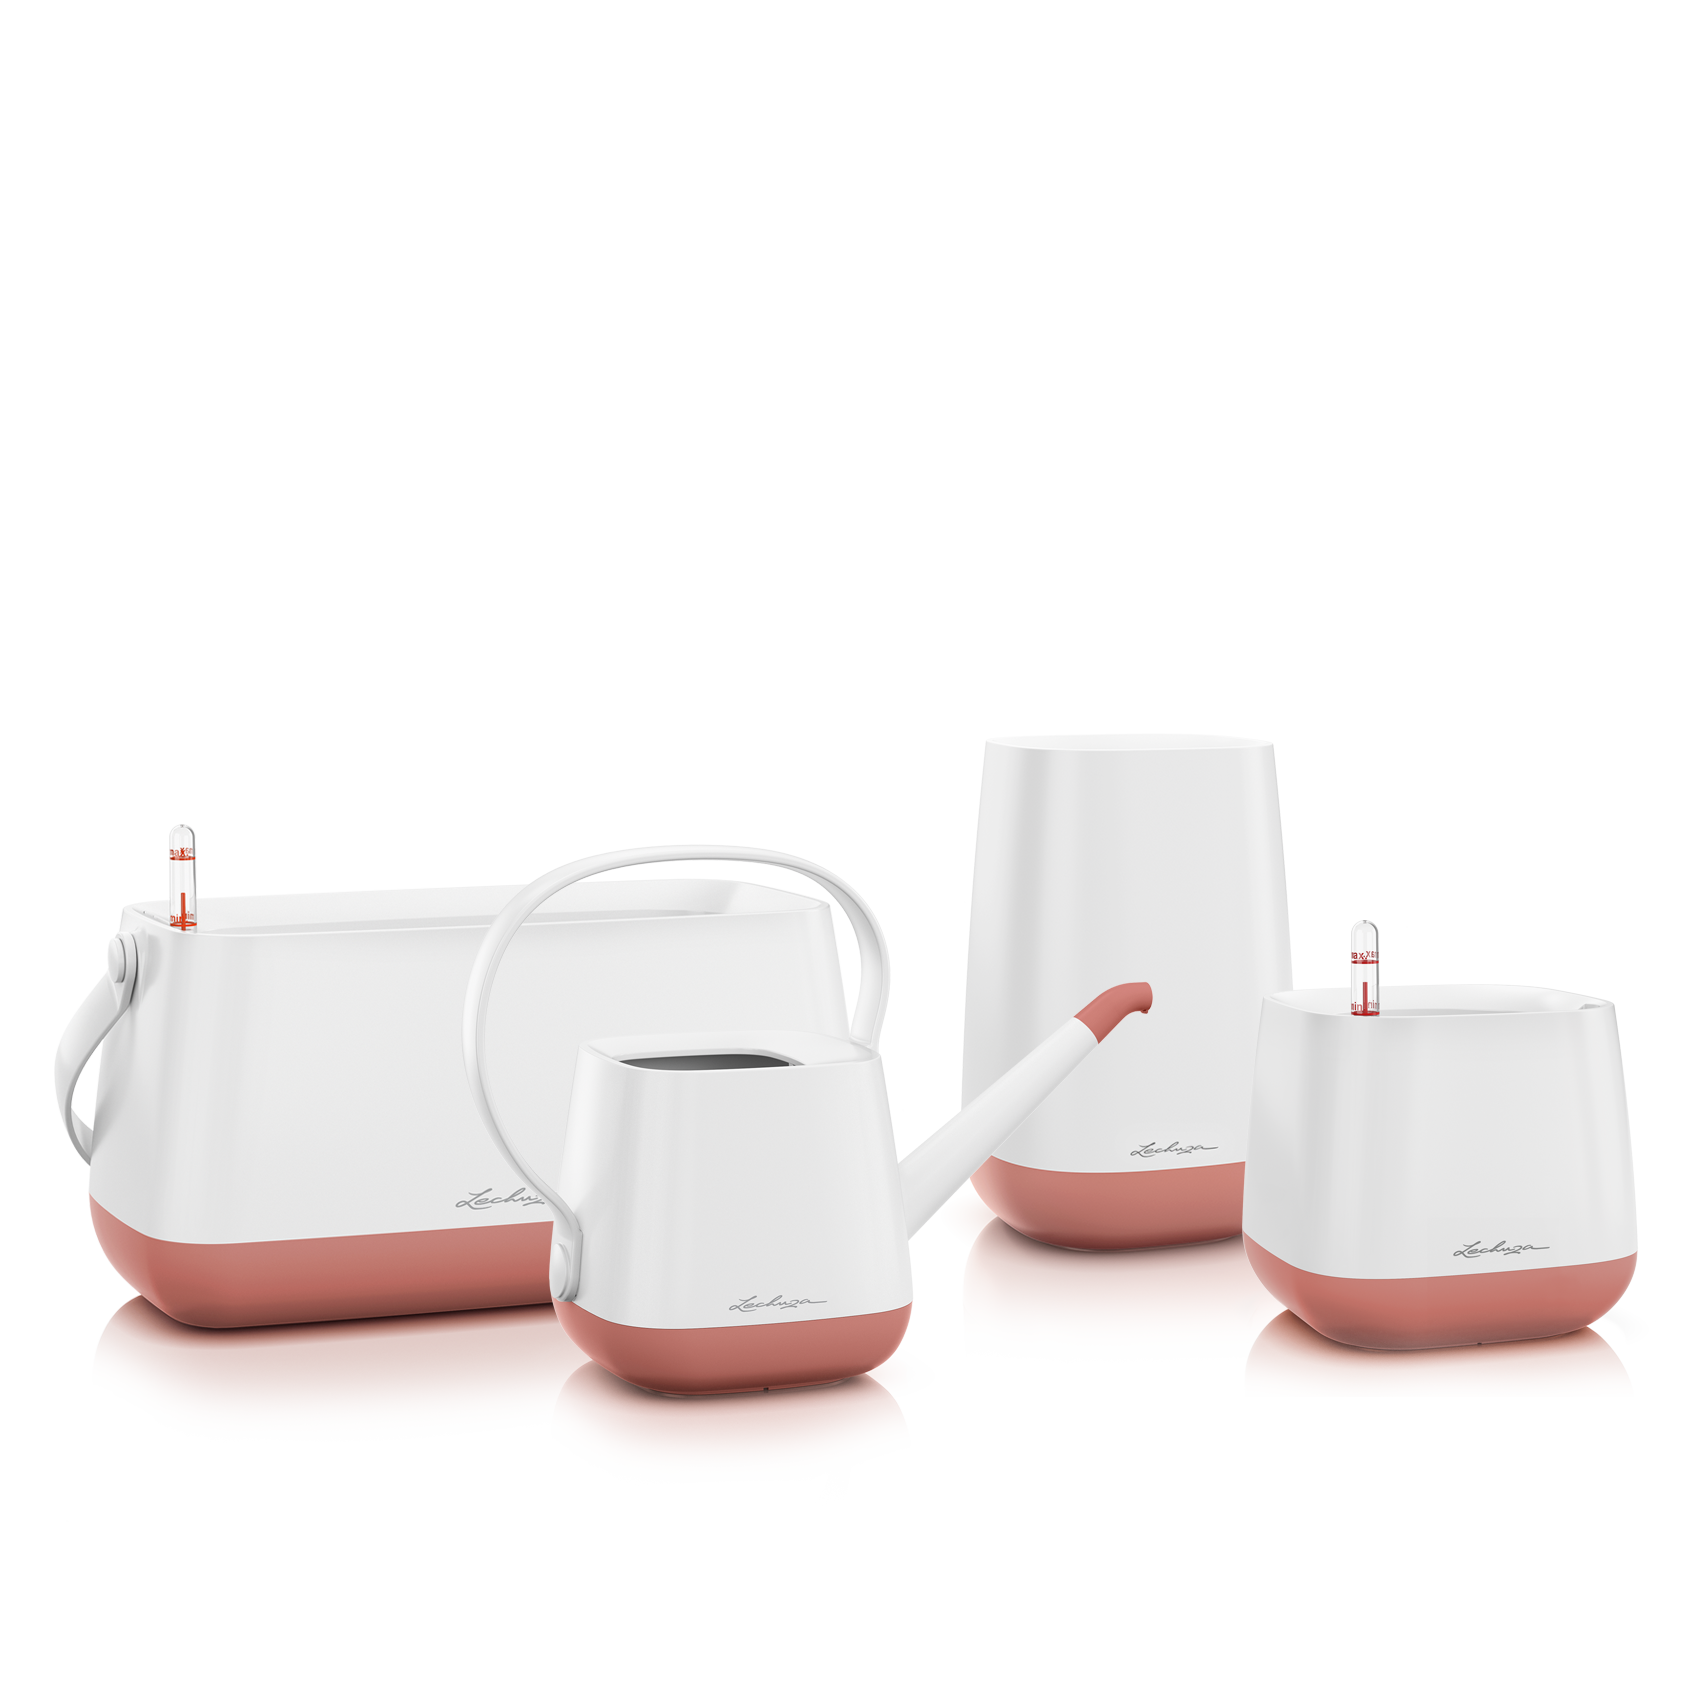 Set YULA blanc/rose poudré satiné